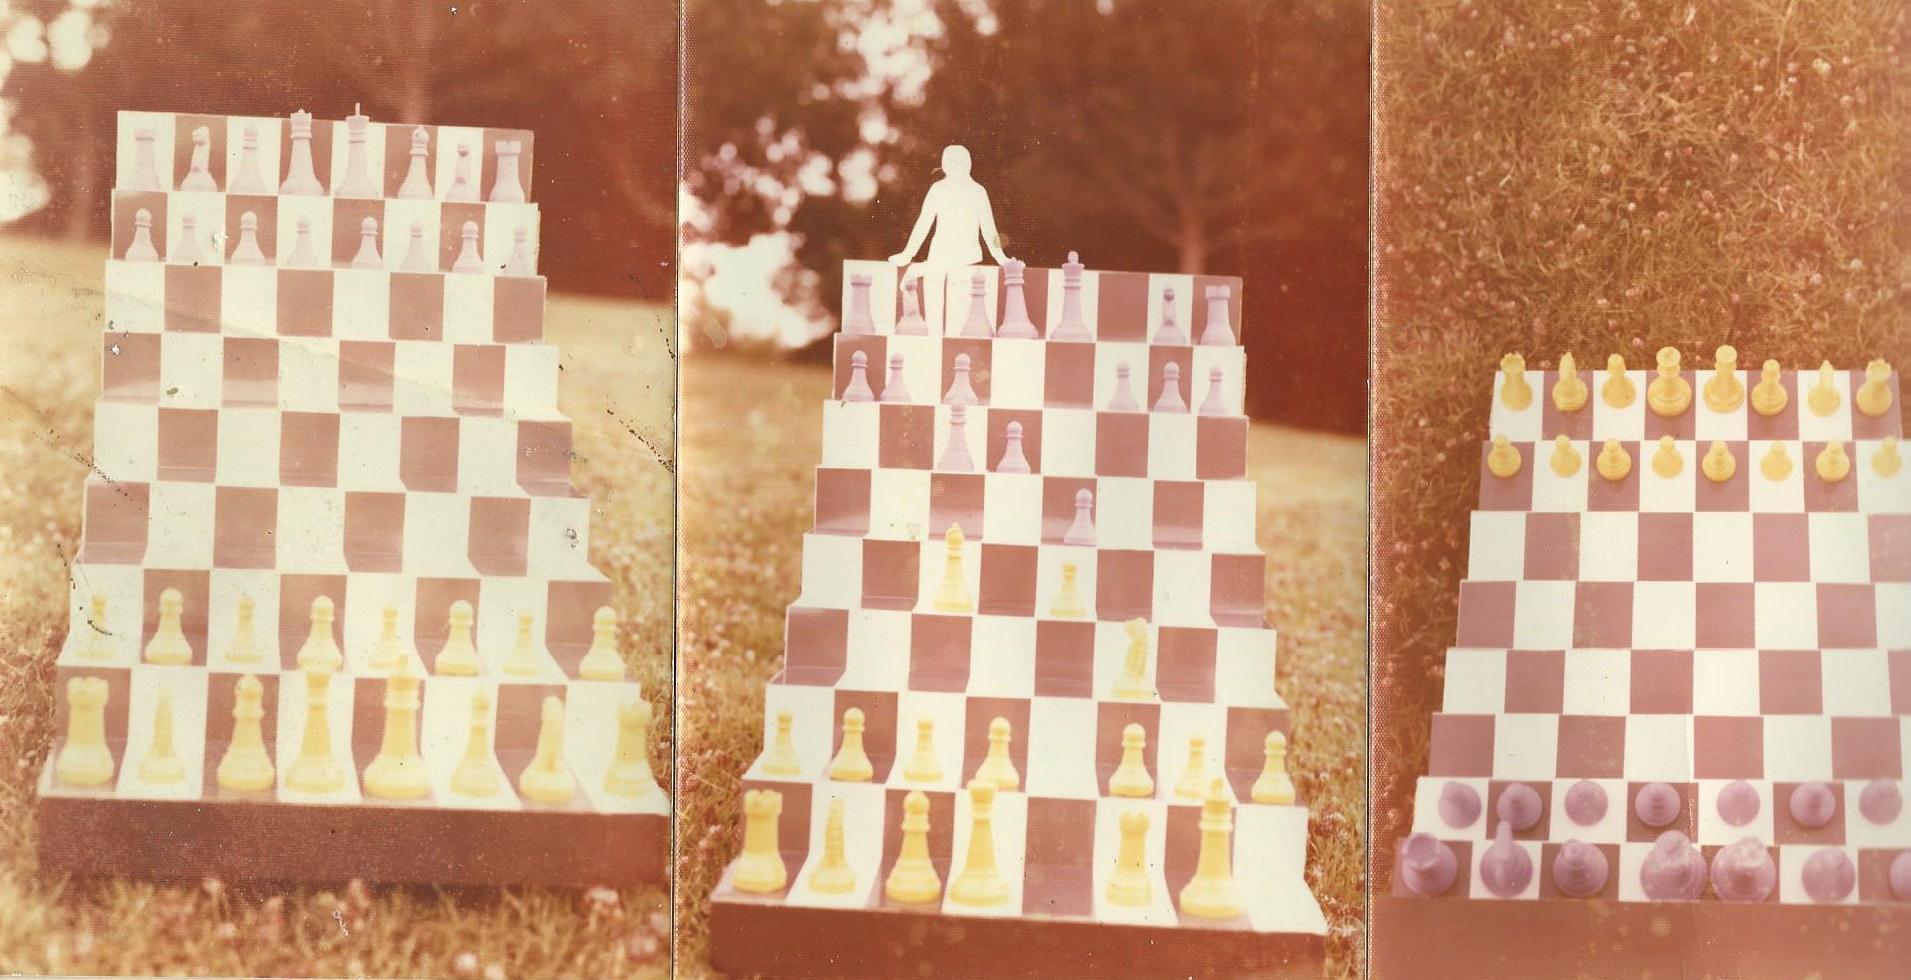 Interactive Chess Sculpture – People as Chess pieces